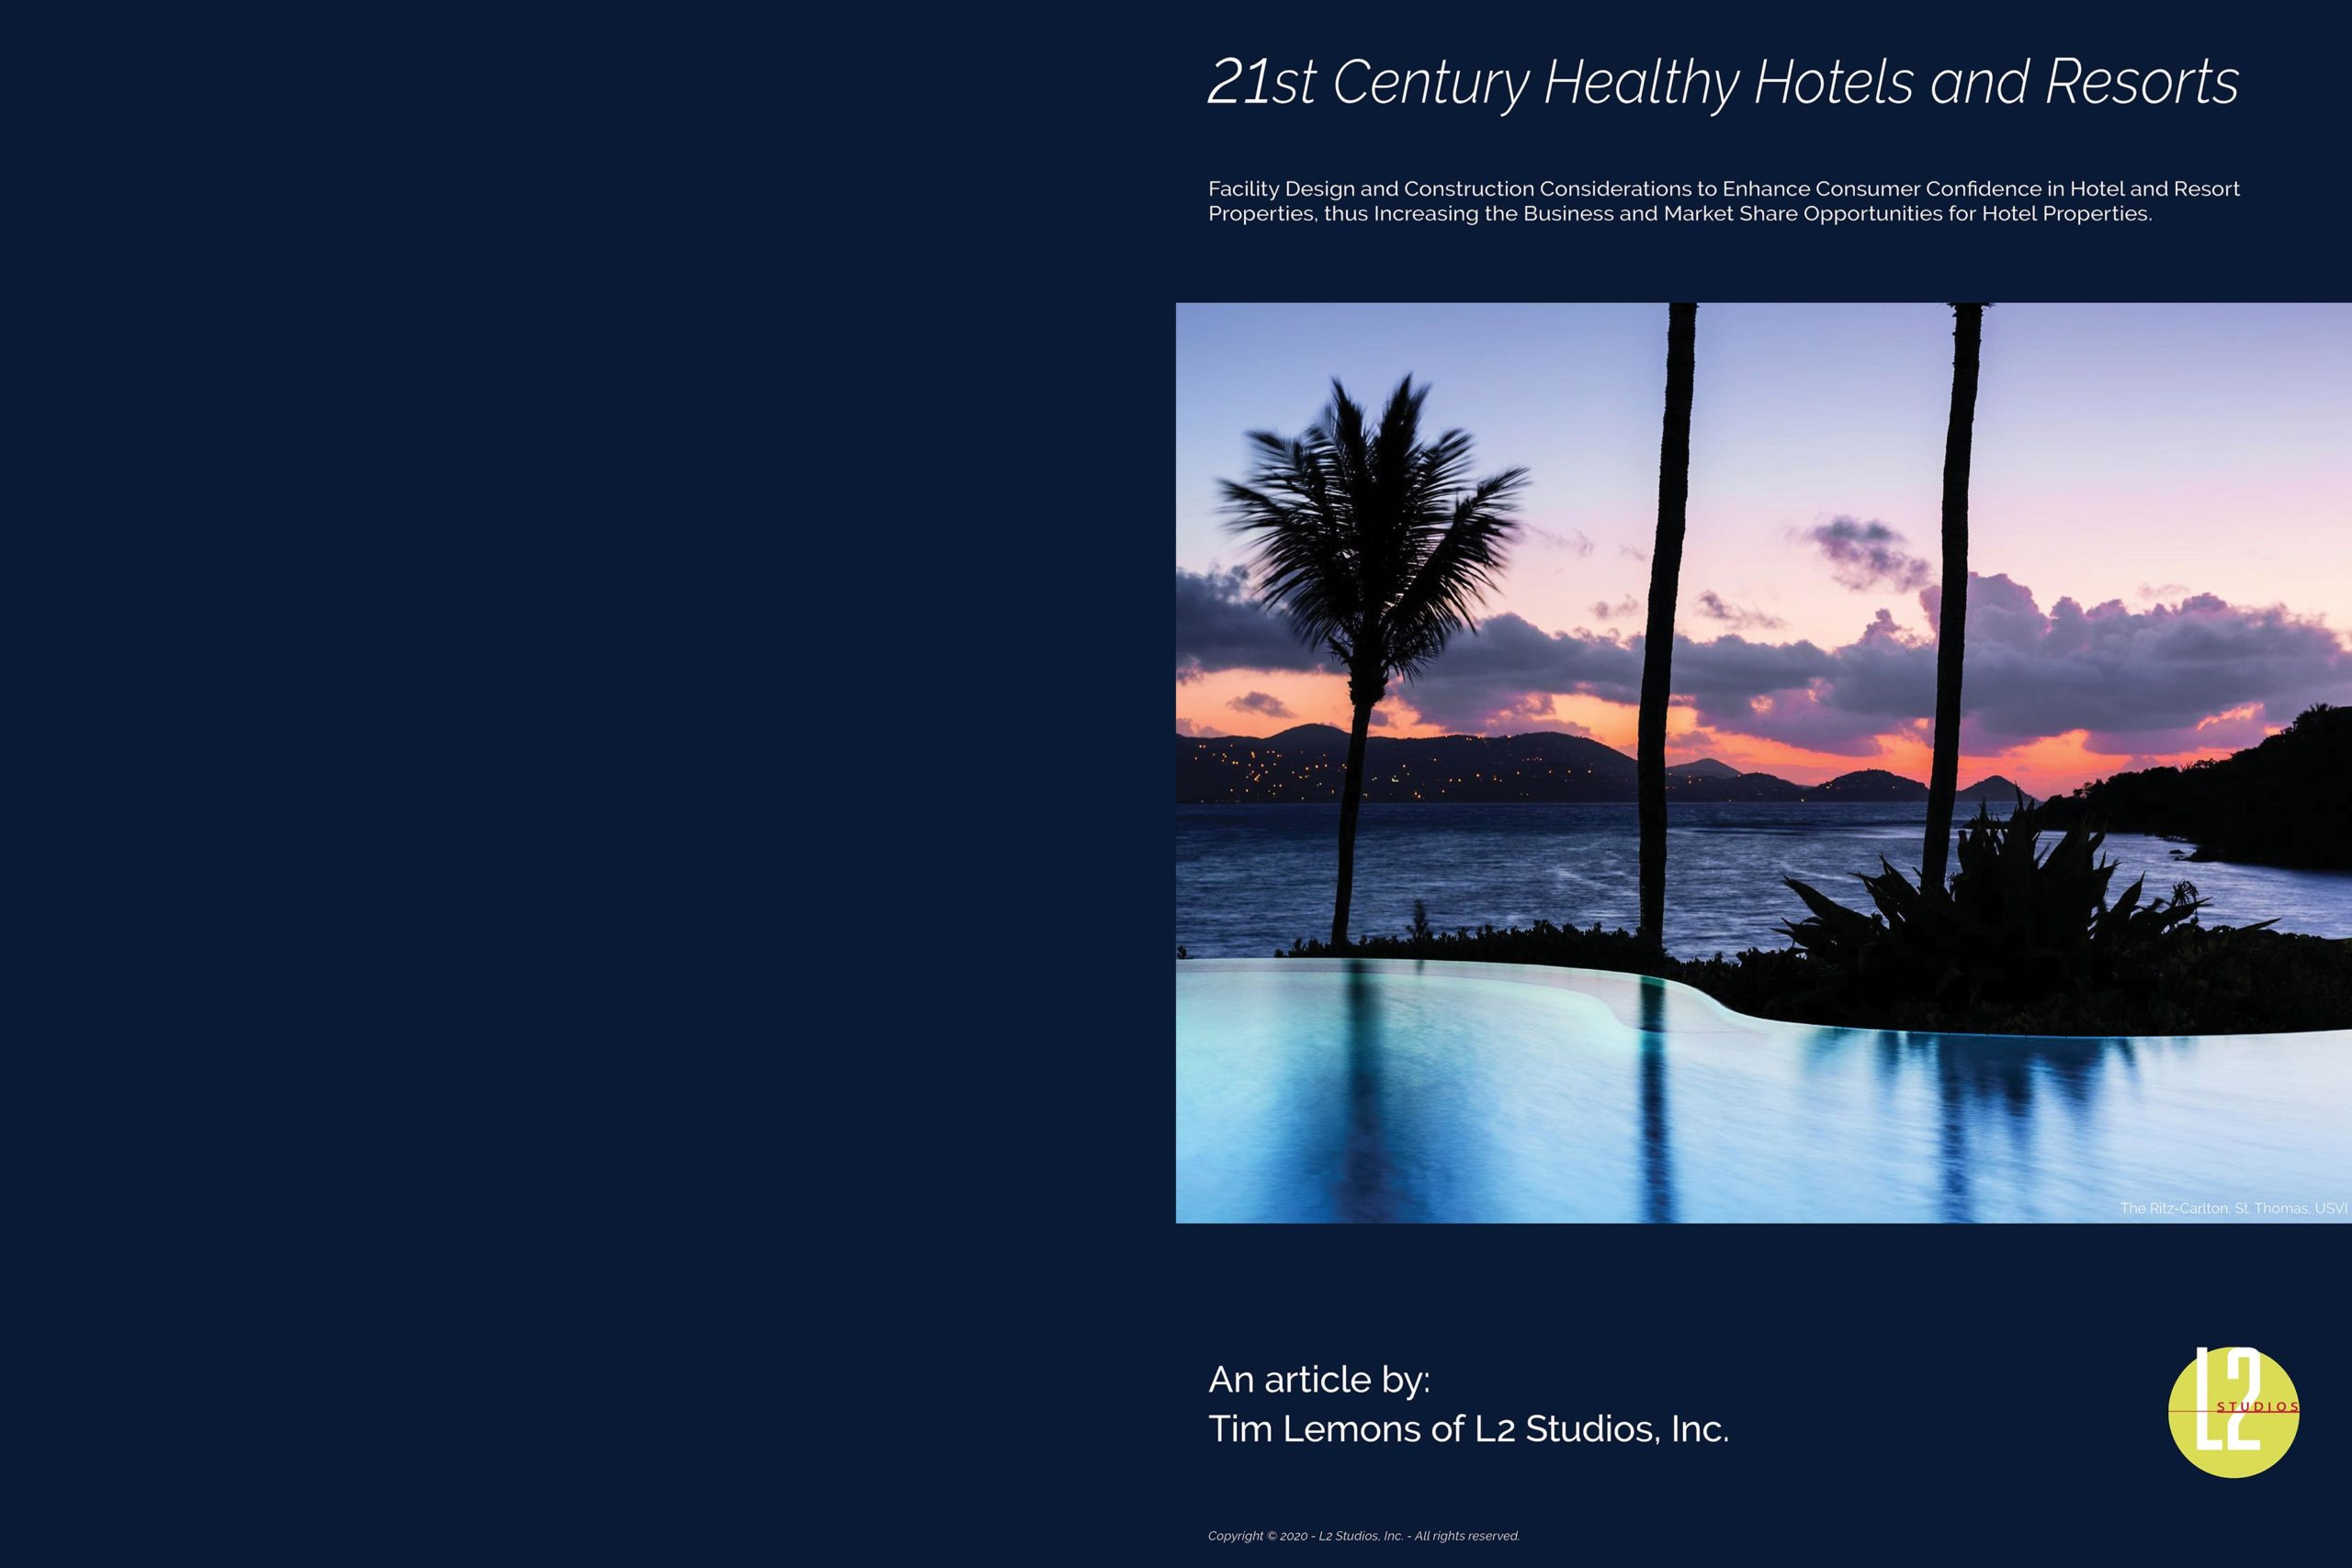 21st Century Healthy Hotels and Resorts